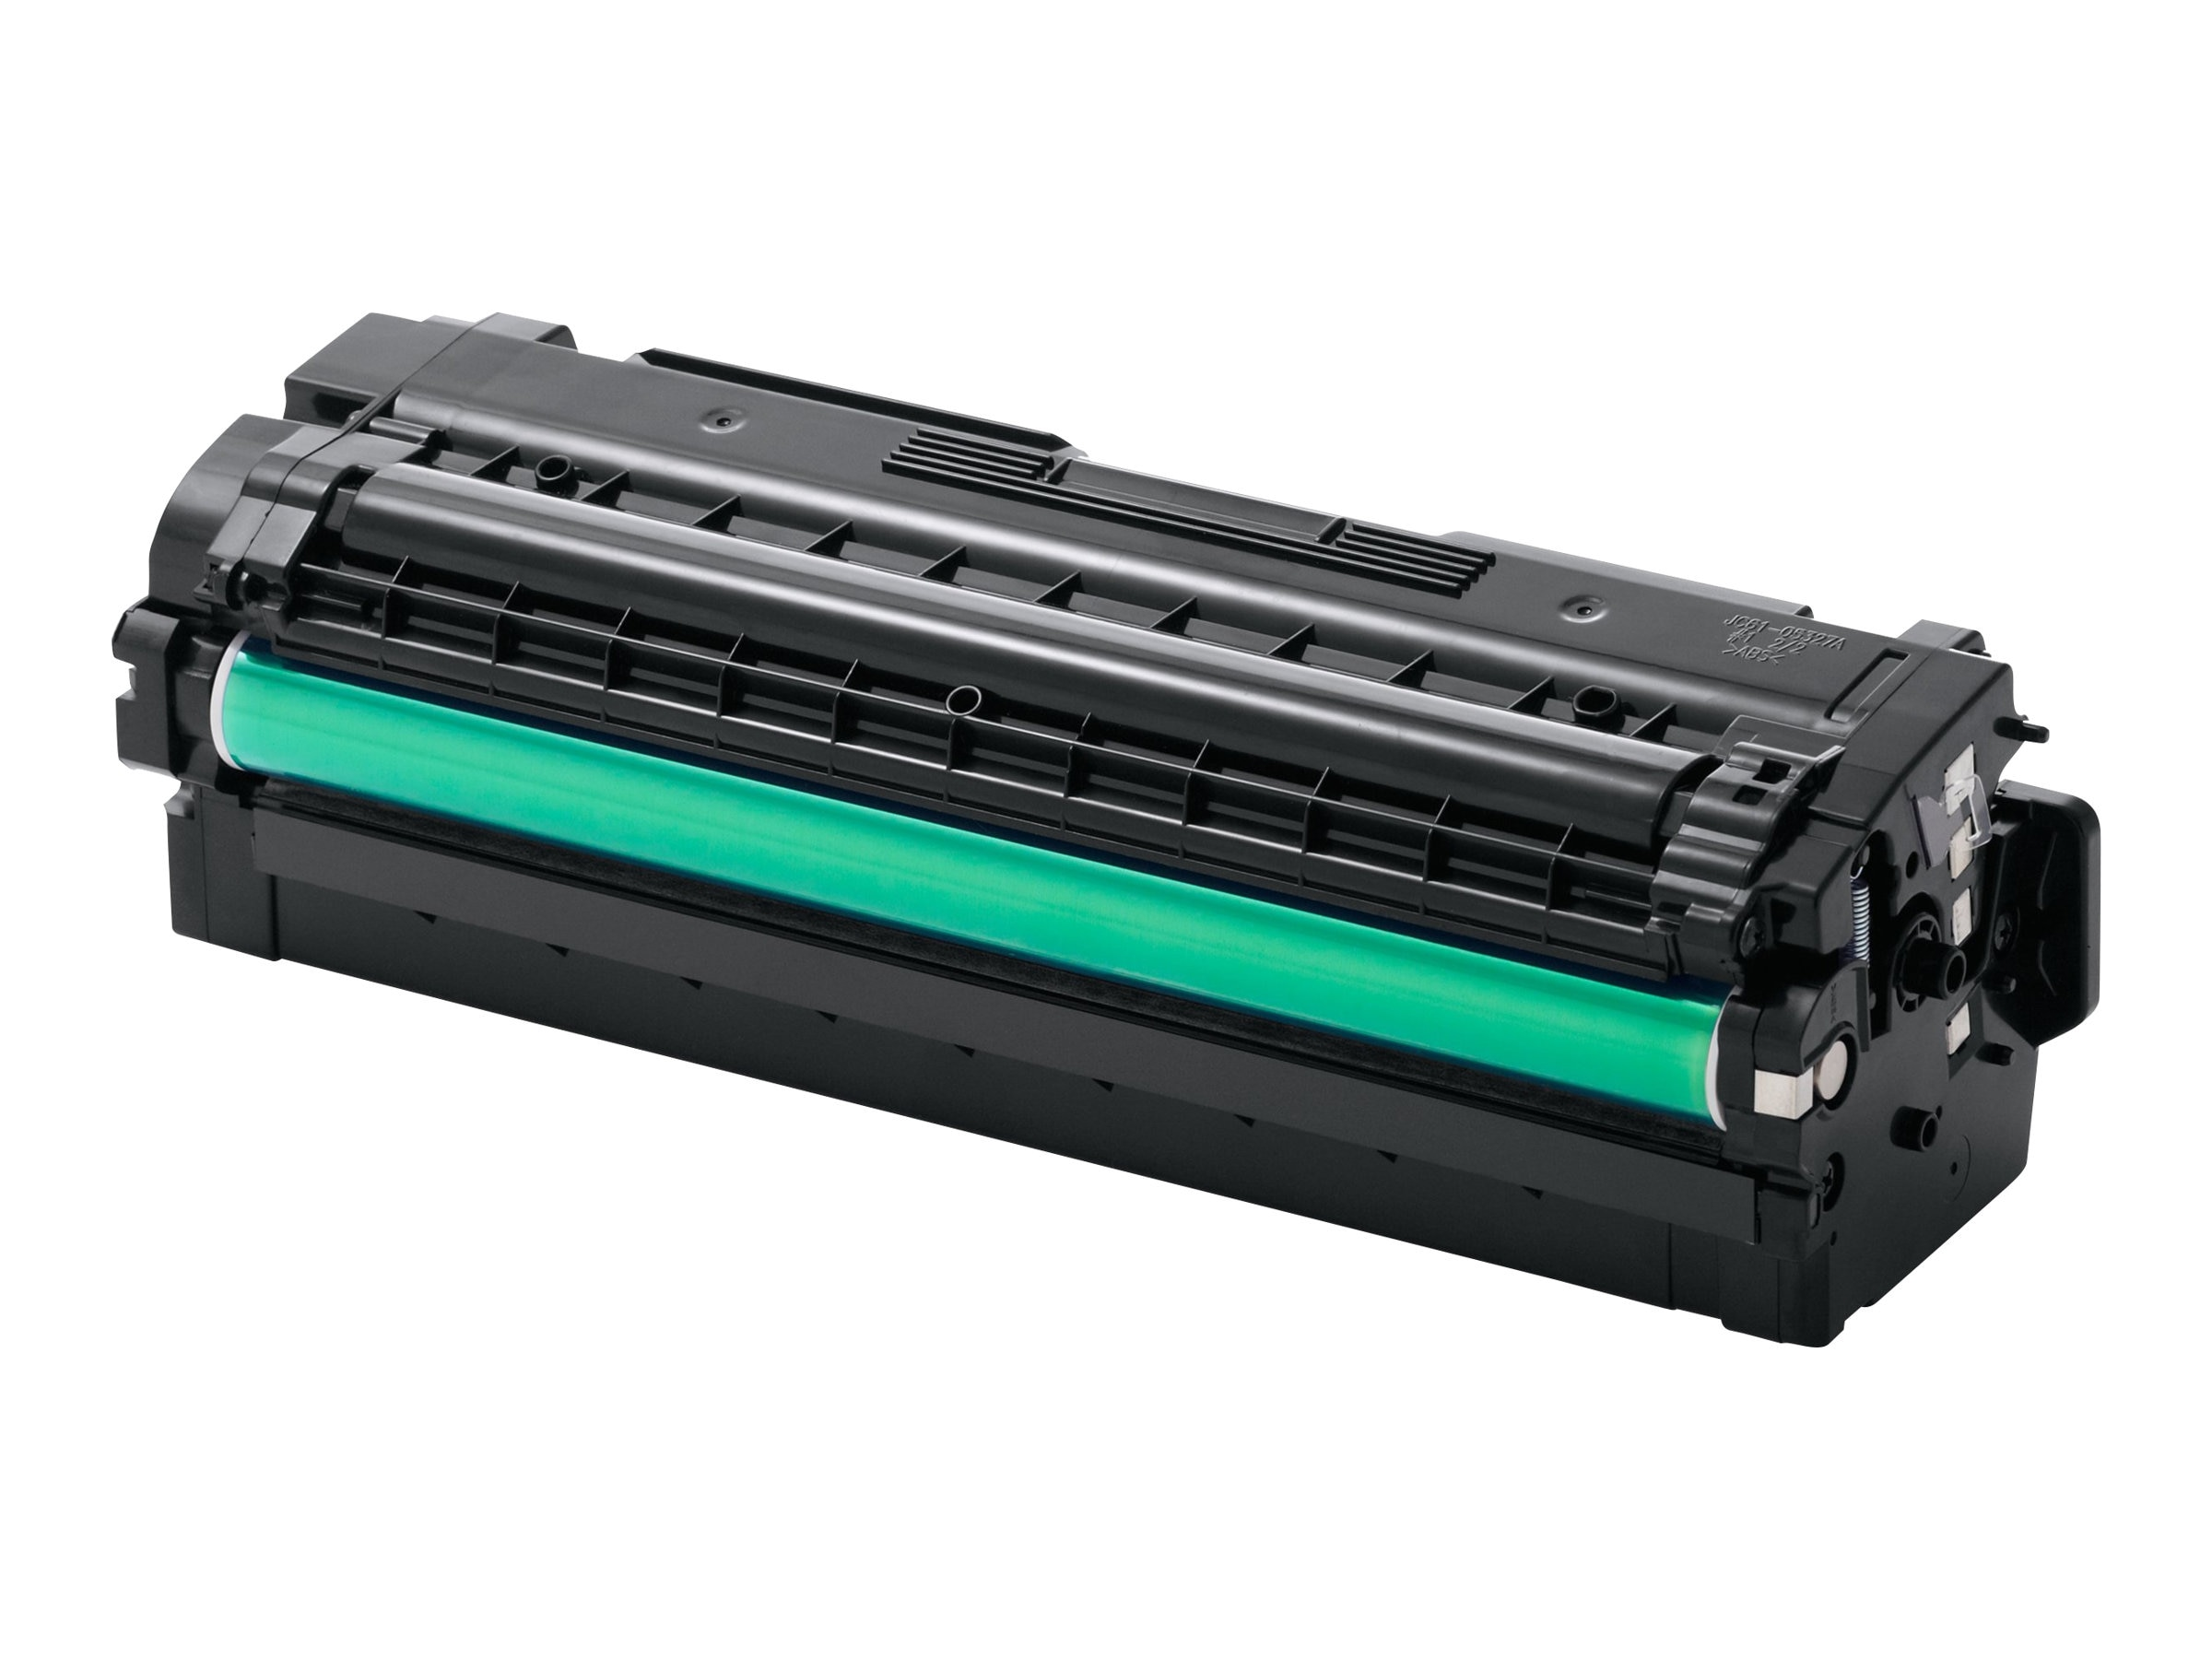 Samsung Cyan Toner Cartridge for ProXpress C2620DW & C2670FW